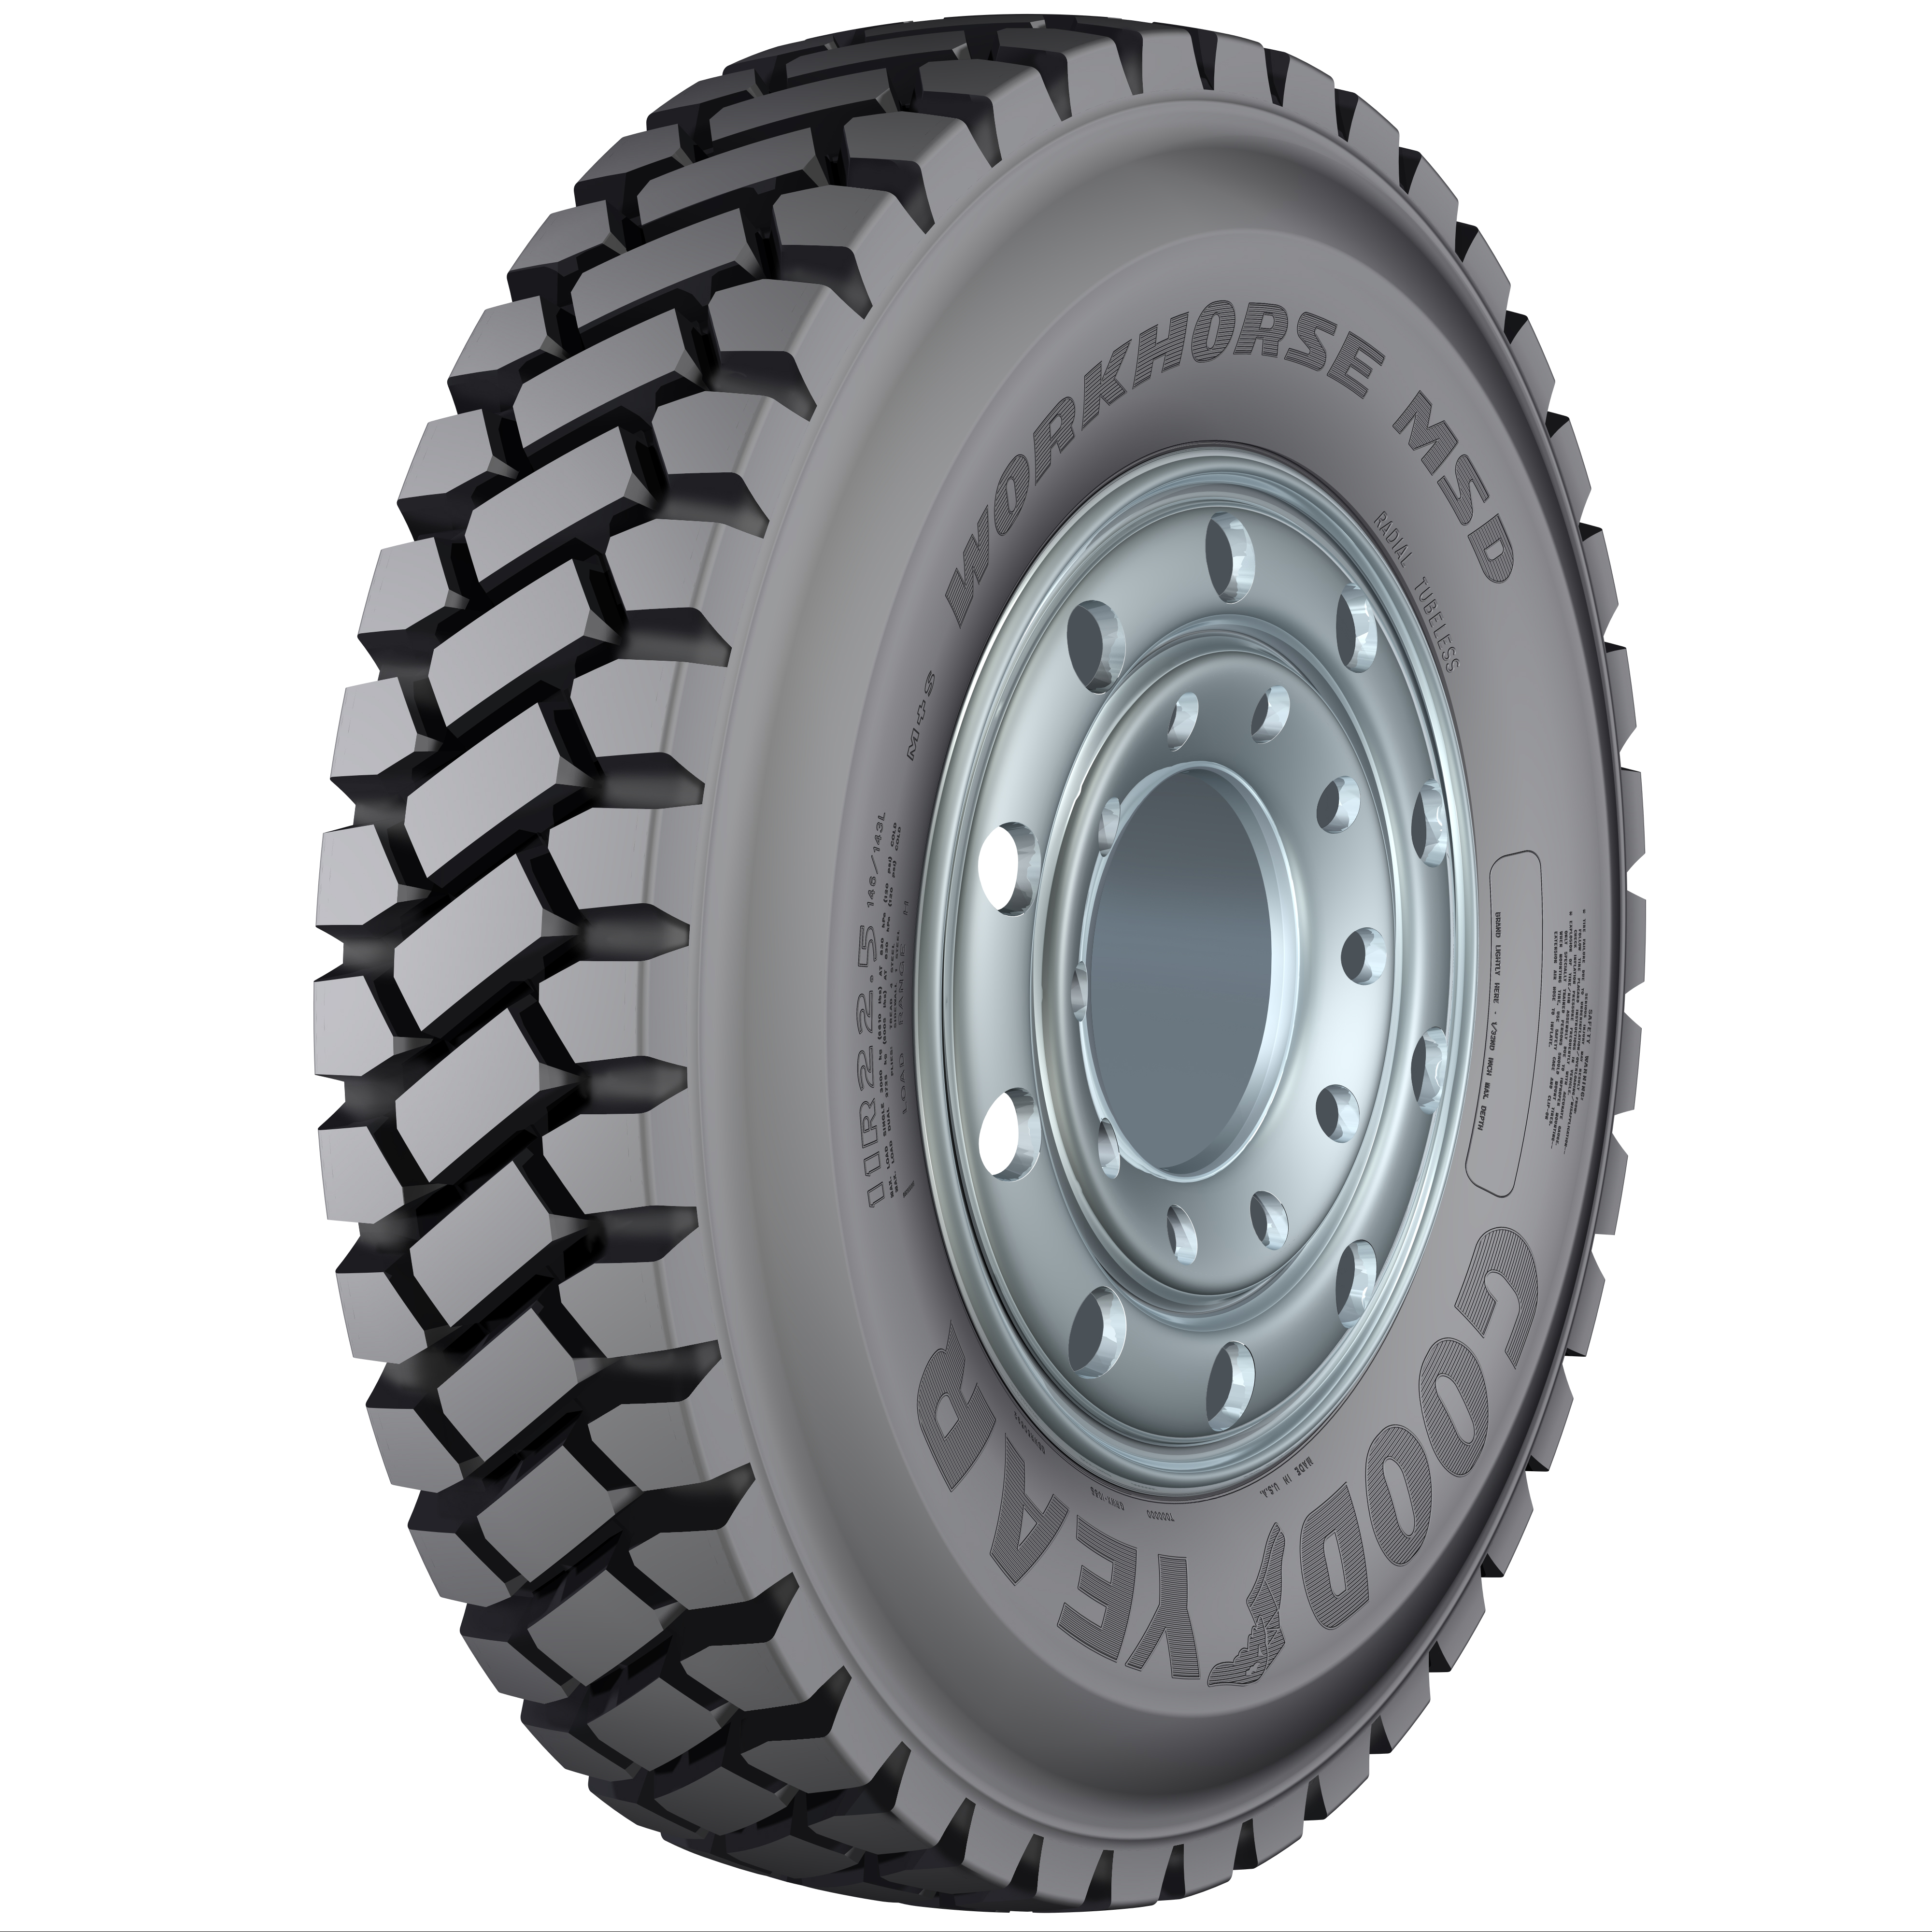 Goodyear Adds Another Mixed-Service Tire Line: the Workhorse